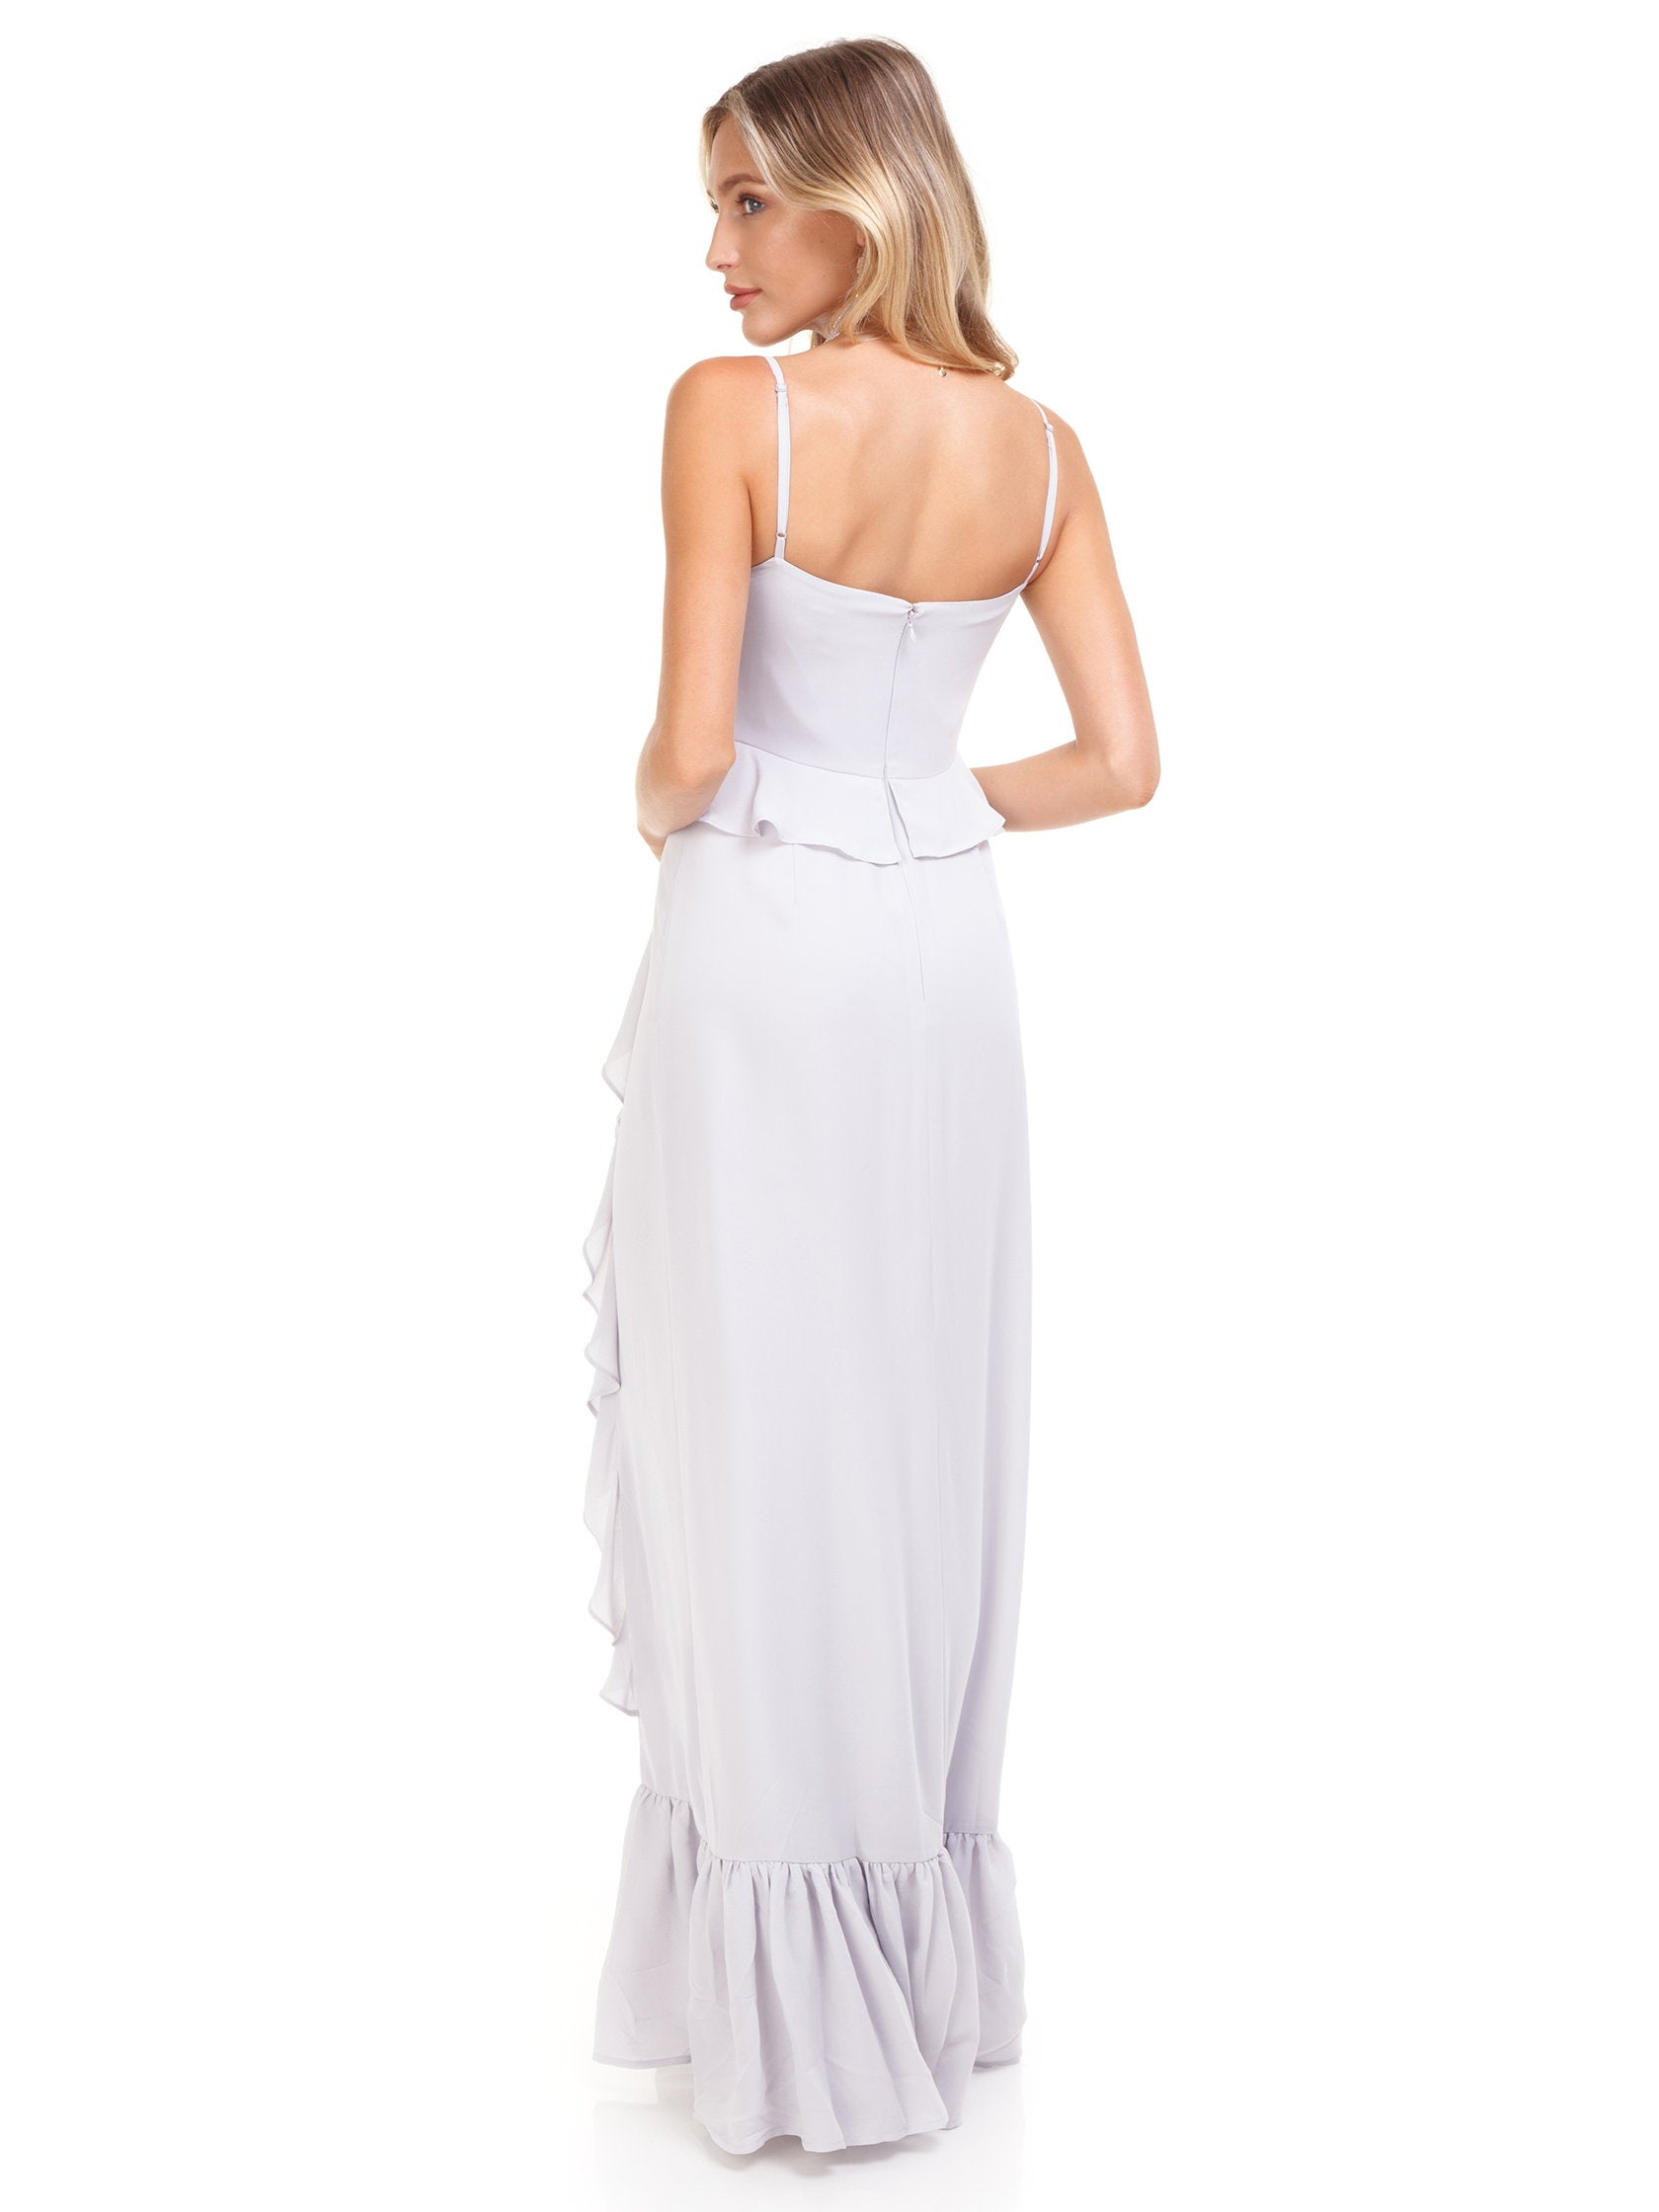 ed03448a2ee6 Women wearing a dress rental from WAYF called Loyal Ruffle Empire Tiered  Maxi